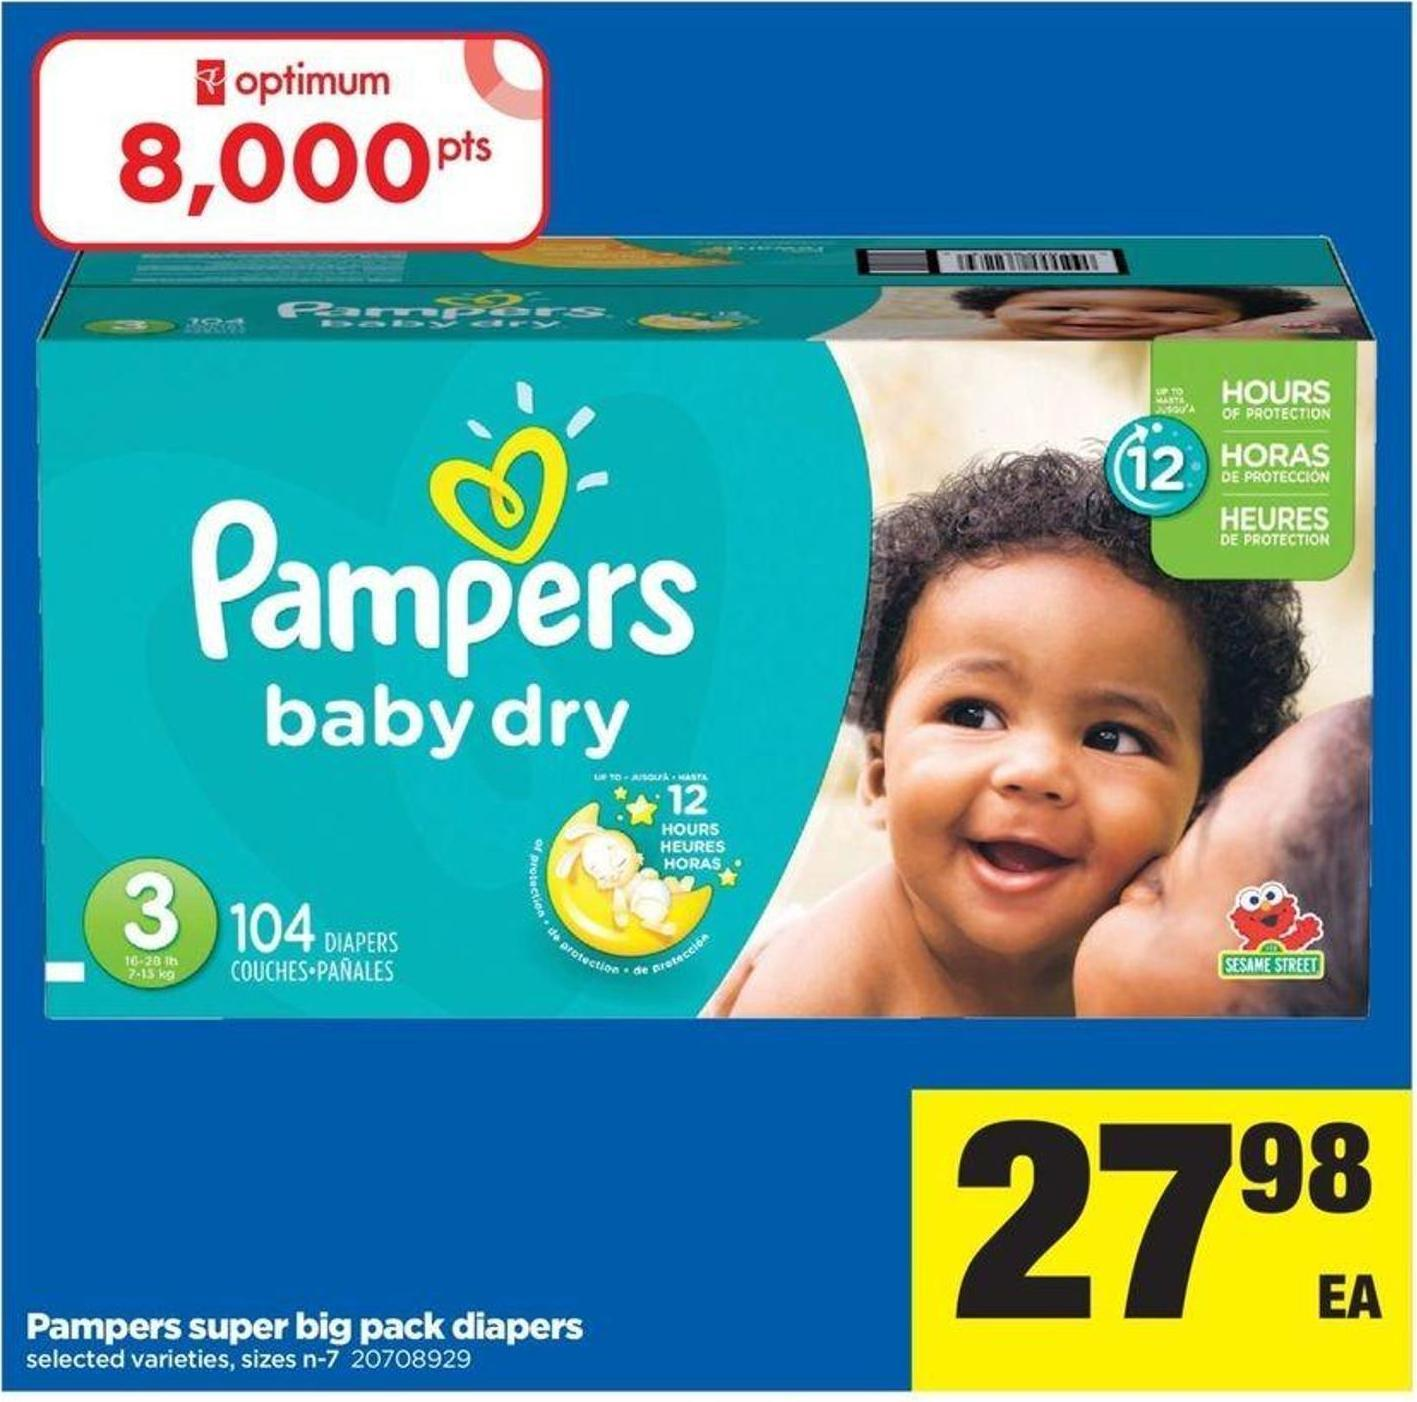 Pampers Super Big Pack Diapers - Sizes N-7